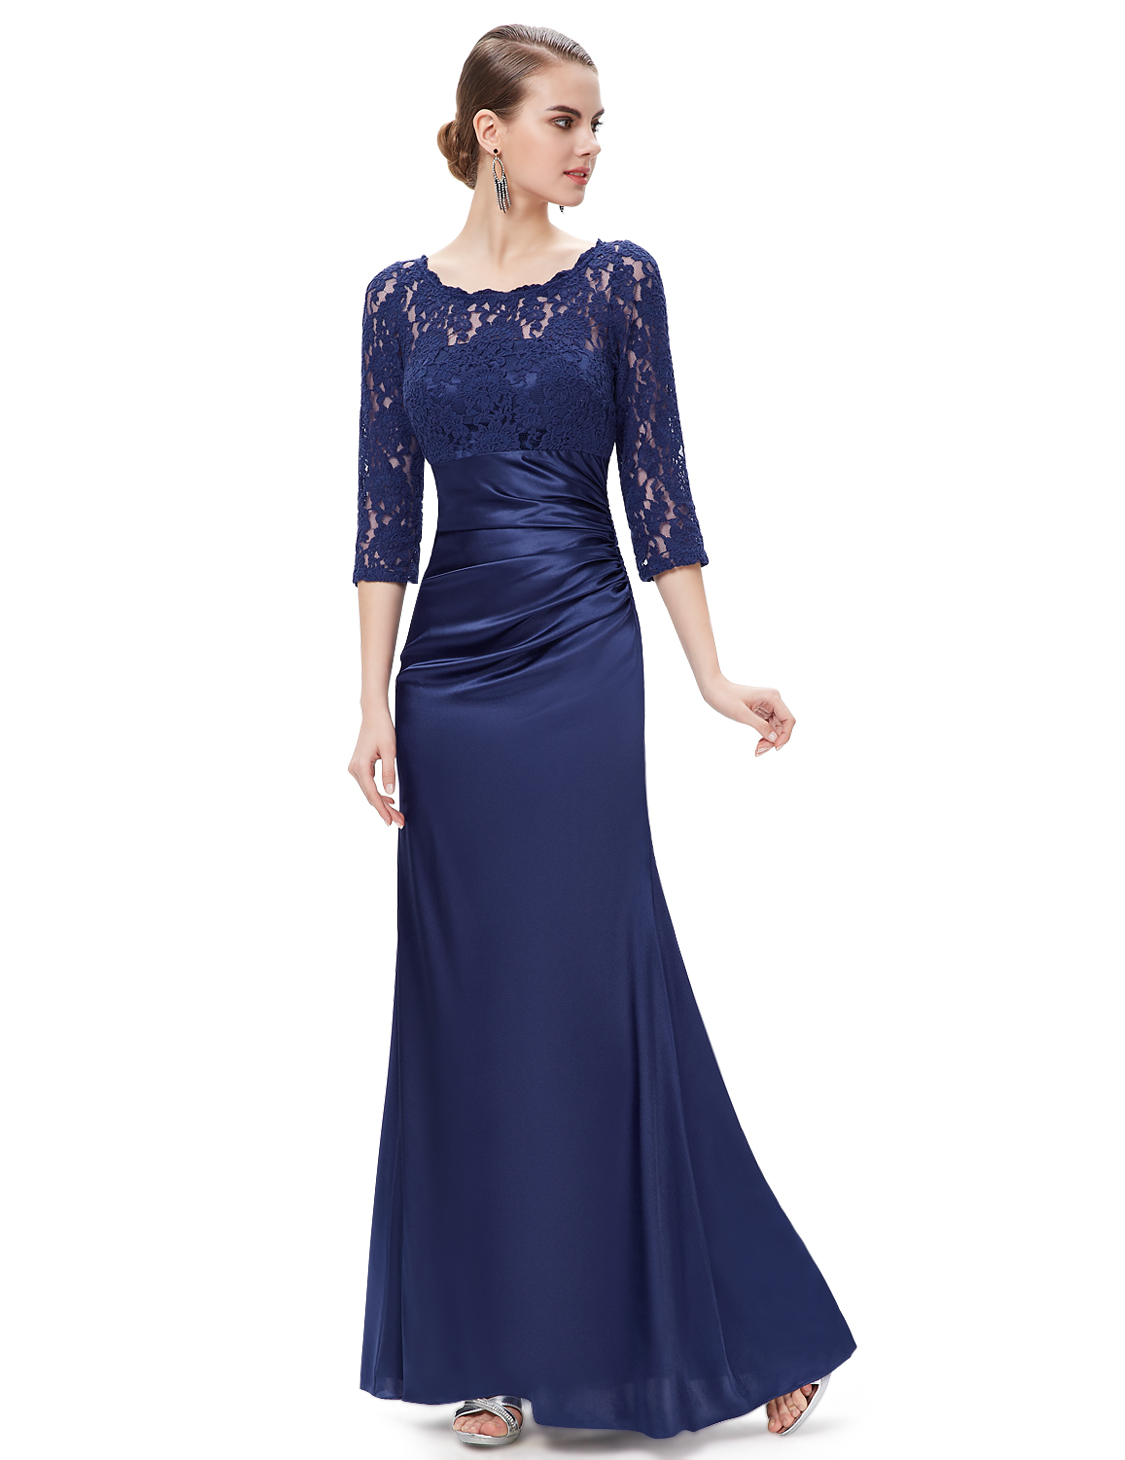 Us Women 34 Long Sleeve Lace Long Formal Evening Dress Party Prom